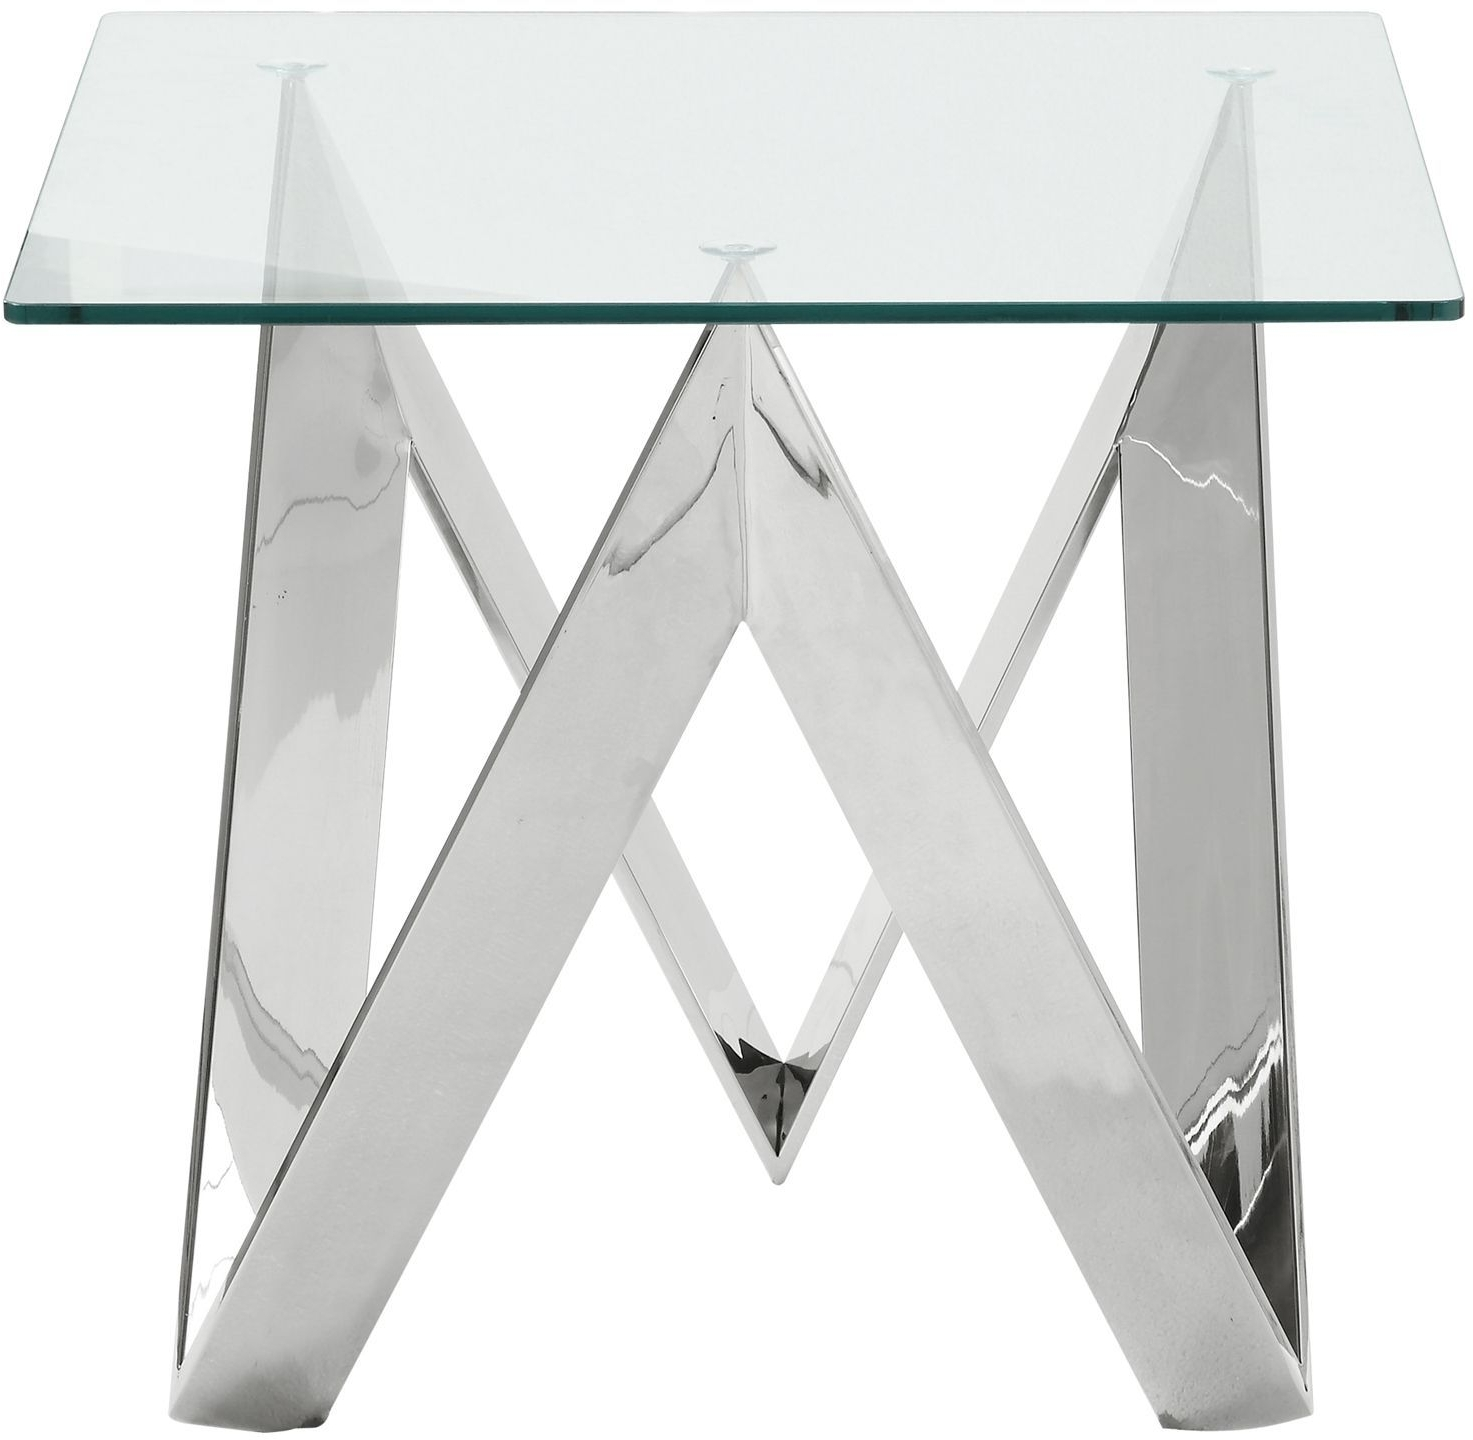 Carly Triangle Tables Regarding Most Recently Released Widforss Antique Silver Dining Table From Acme (View 23 of 25)